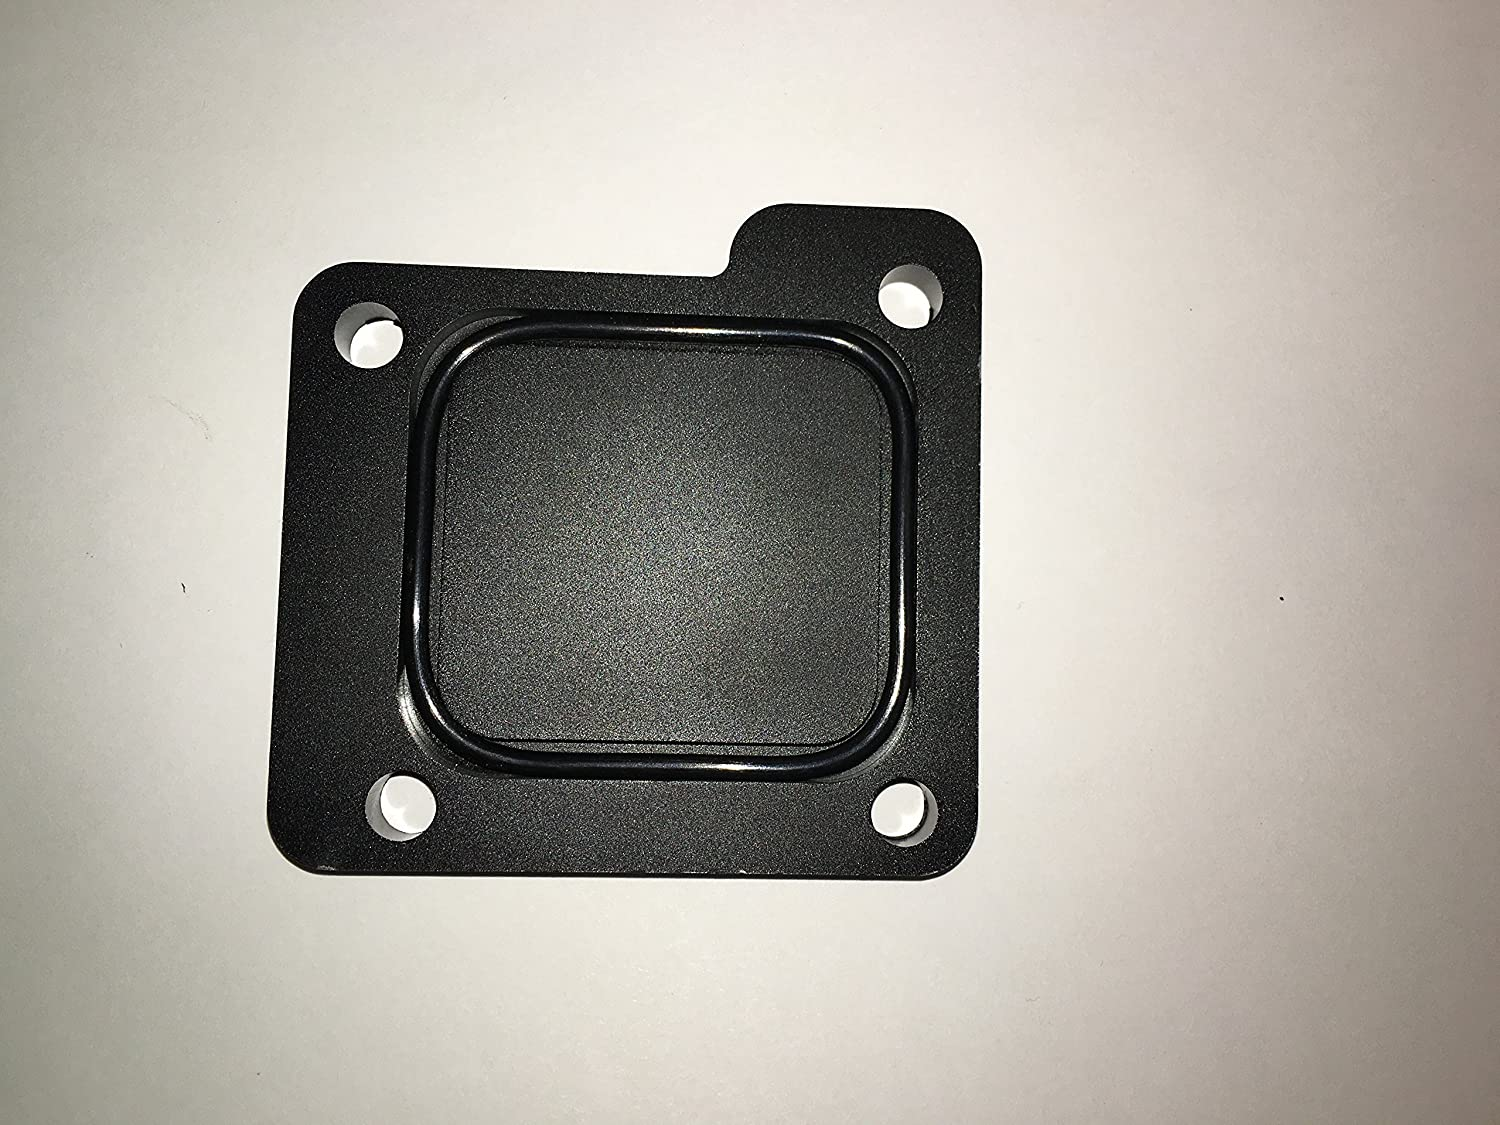 Prairie Sure 4 Manual 4WD Actuator Box Brute Force This is NOT a full kit